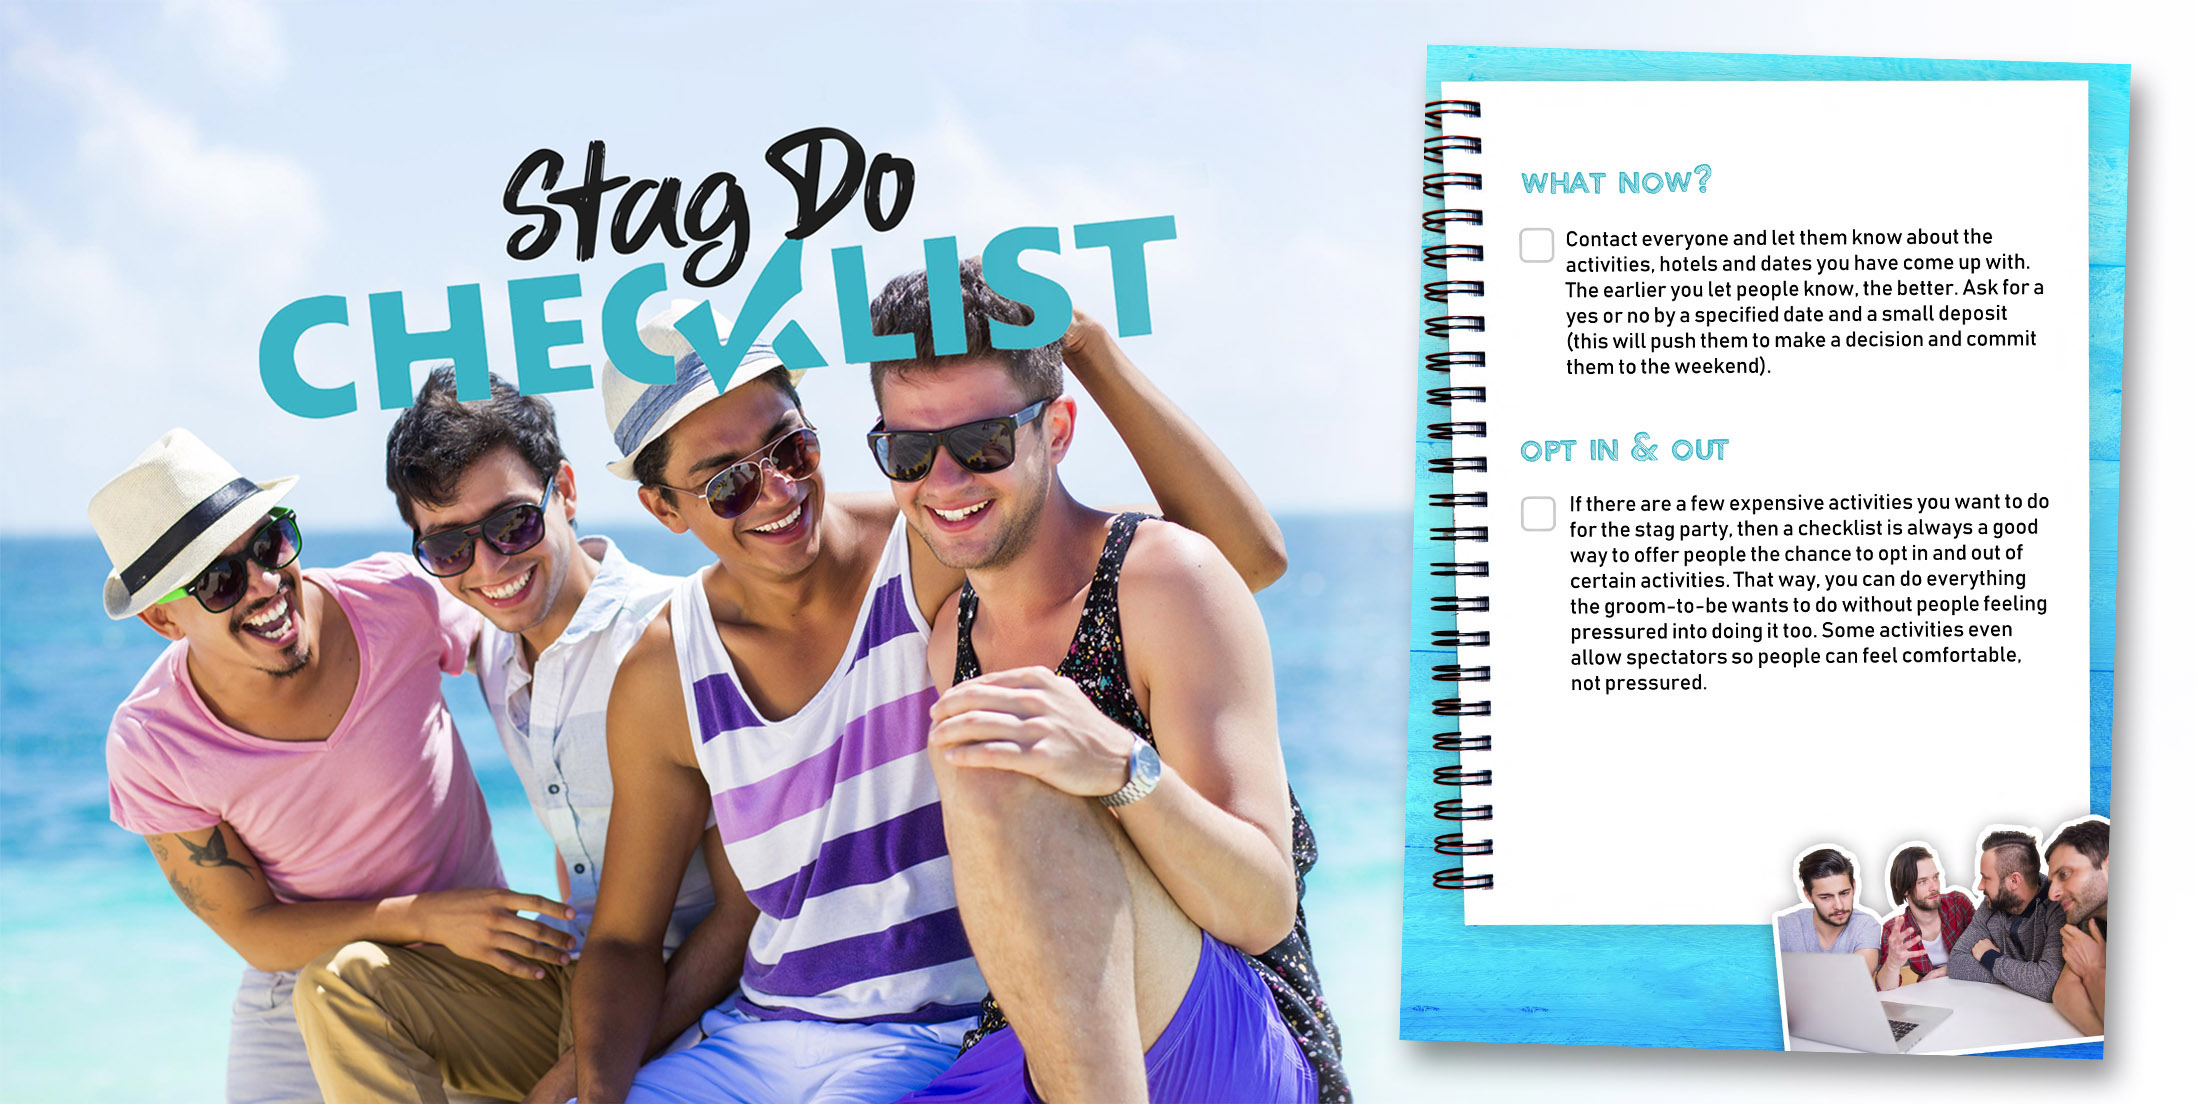 Freebies Page - Stag Do Checklist